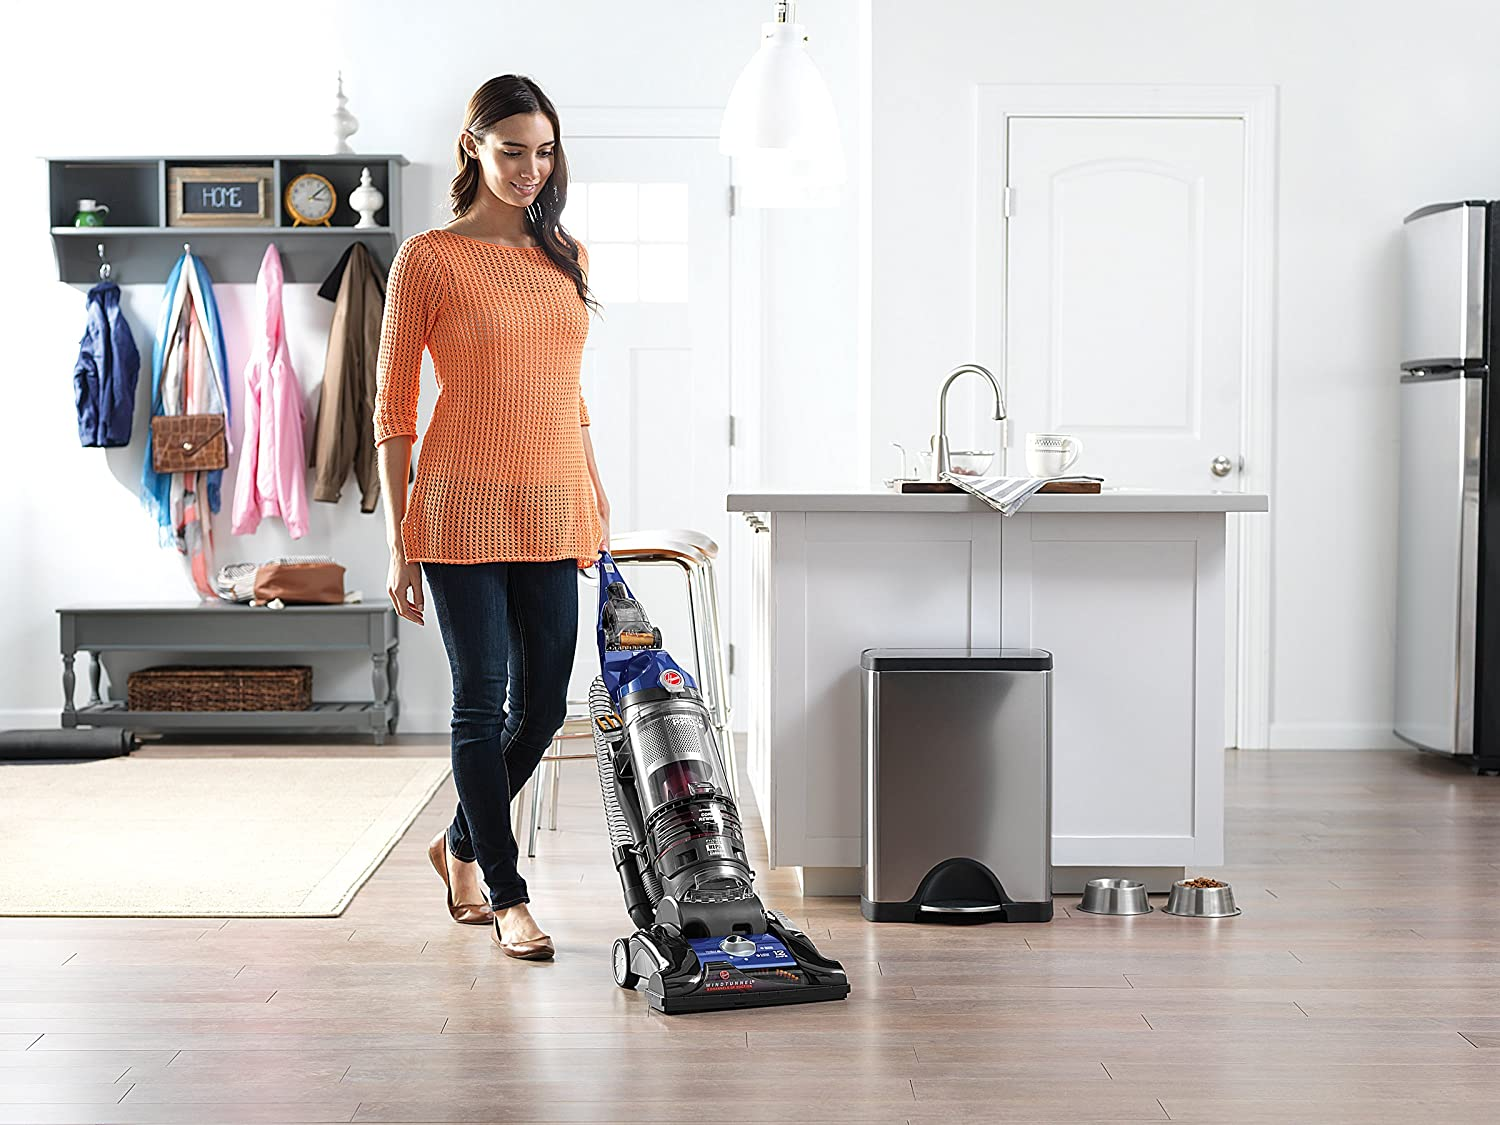 The 10 Best Vacuum Cleaners In 2018: Sharp, Compact And Quiet 24